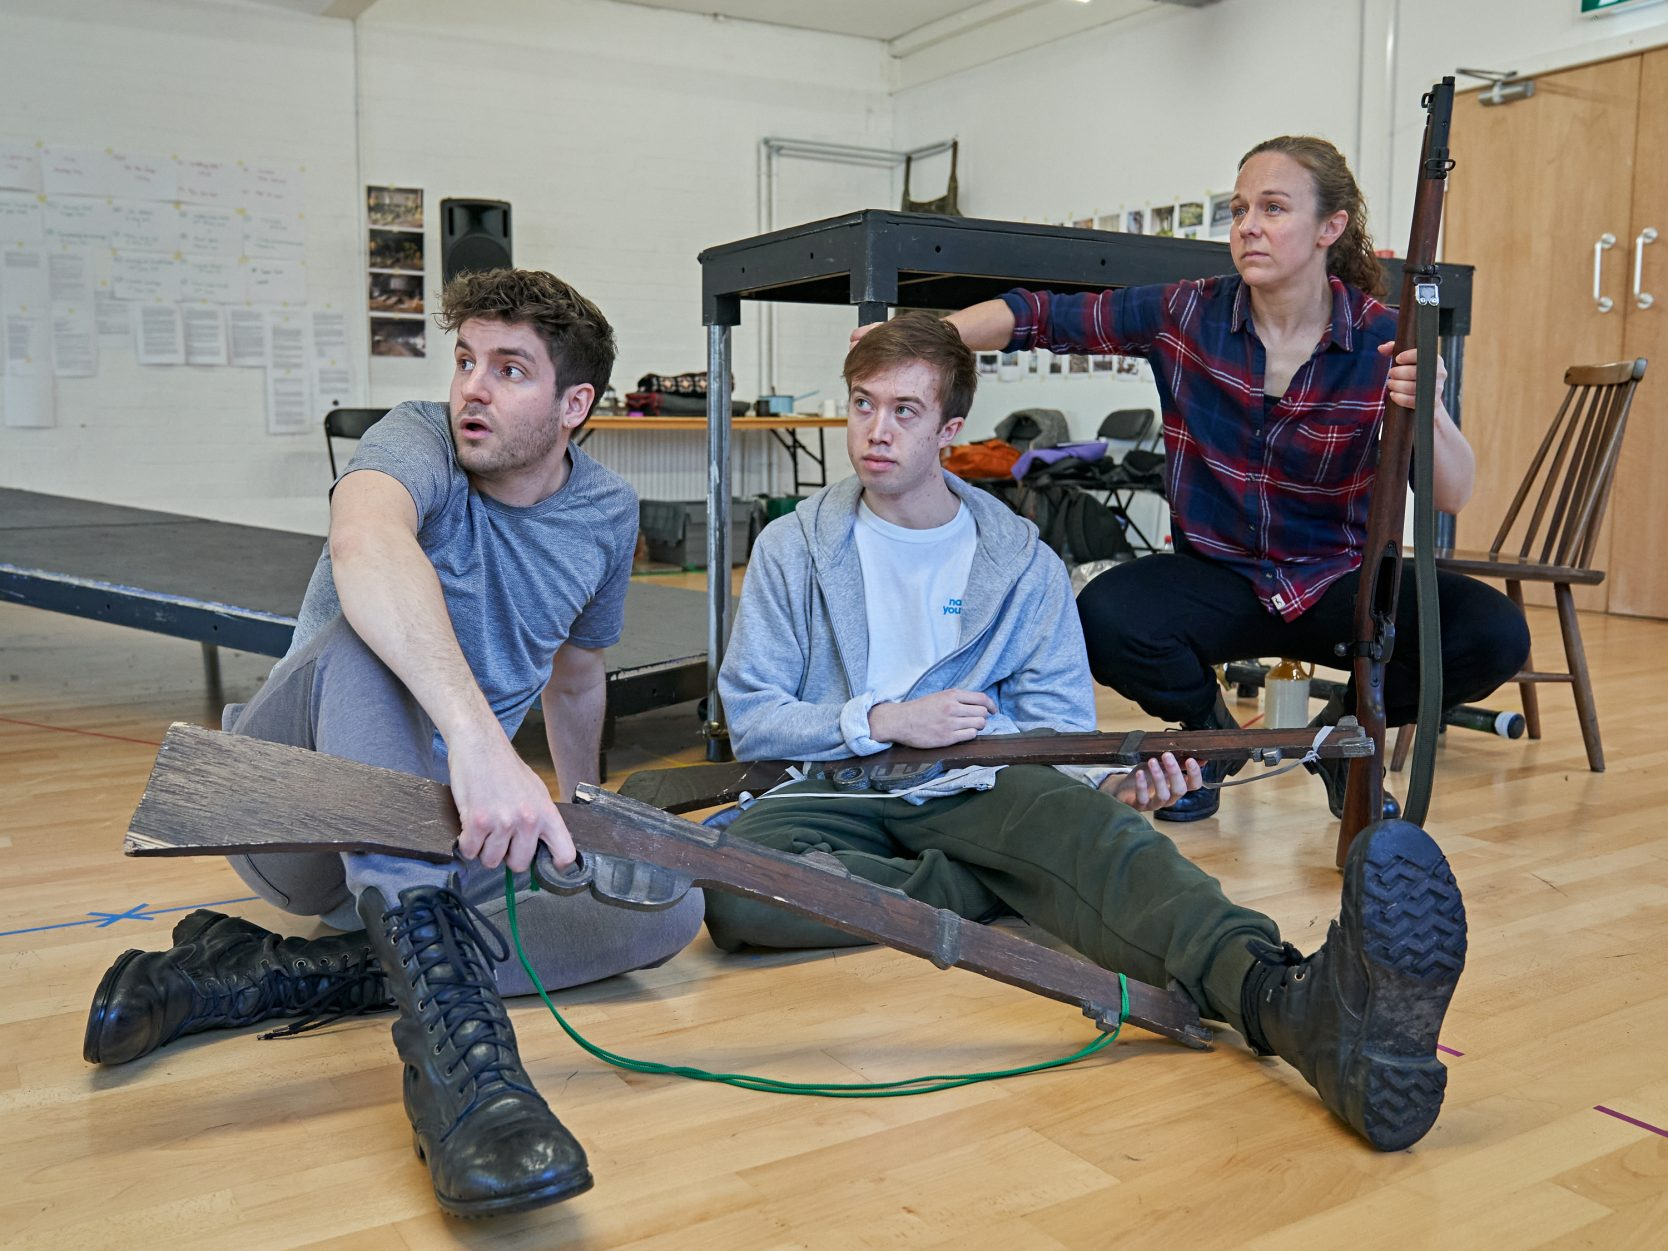 The cast in rehearsals in early 2020. Photo Credit: Manuel Harlan